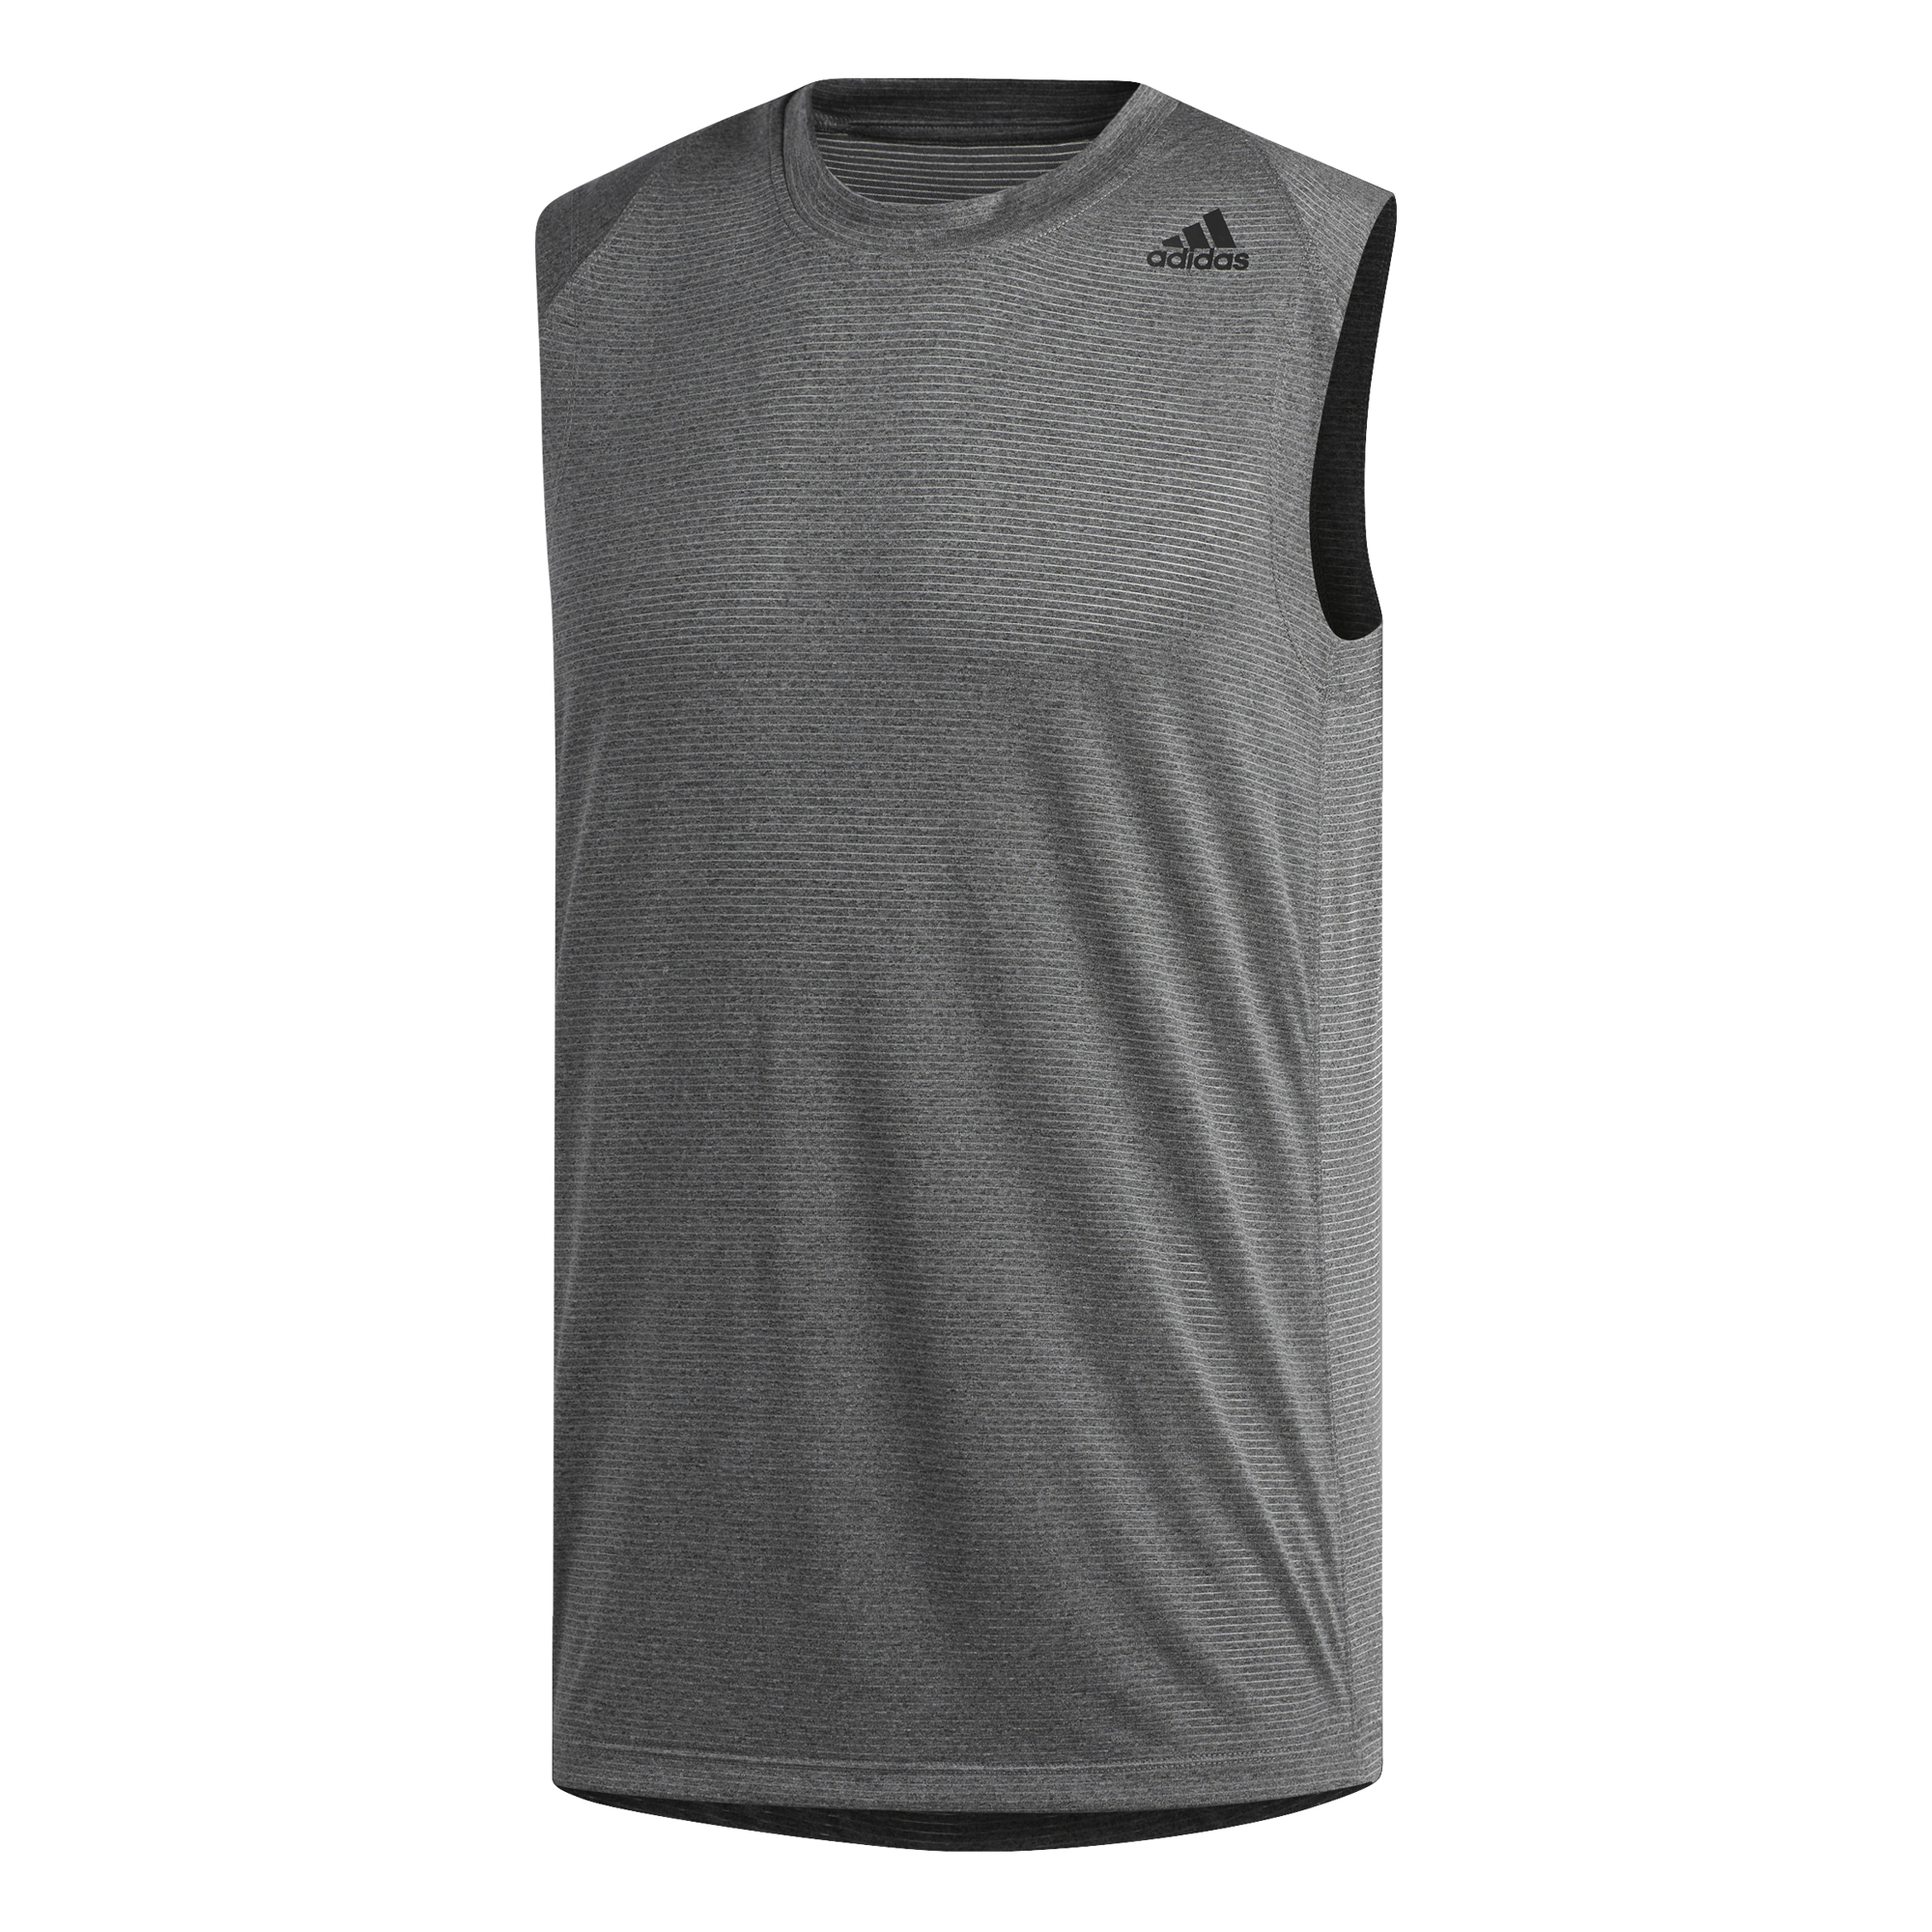 adidas Freelift_Tech Climacool SL 3S Tee | Jerseys